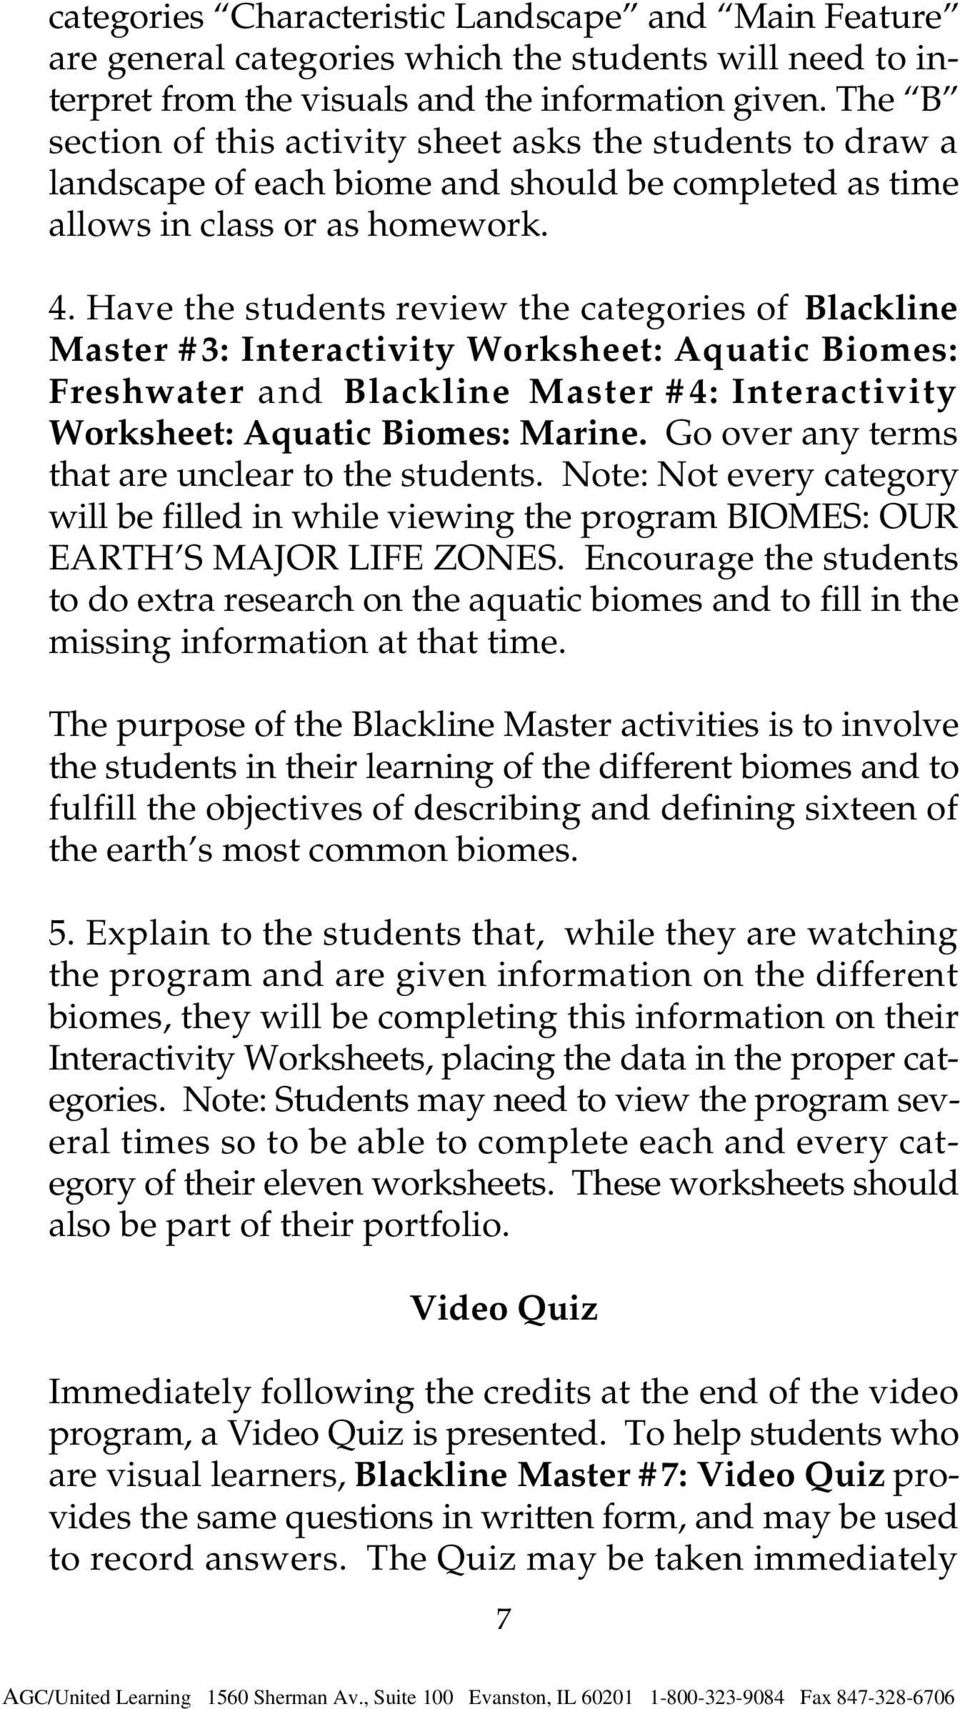 Have the students review the categories of Blackline Master #3: Interactivity Worksheet: Aquatic Biomes: Freshwater and Blackline Master #4: Interactivity Worksheet: Aquatic Biomes: Marine.